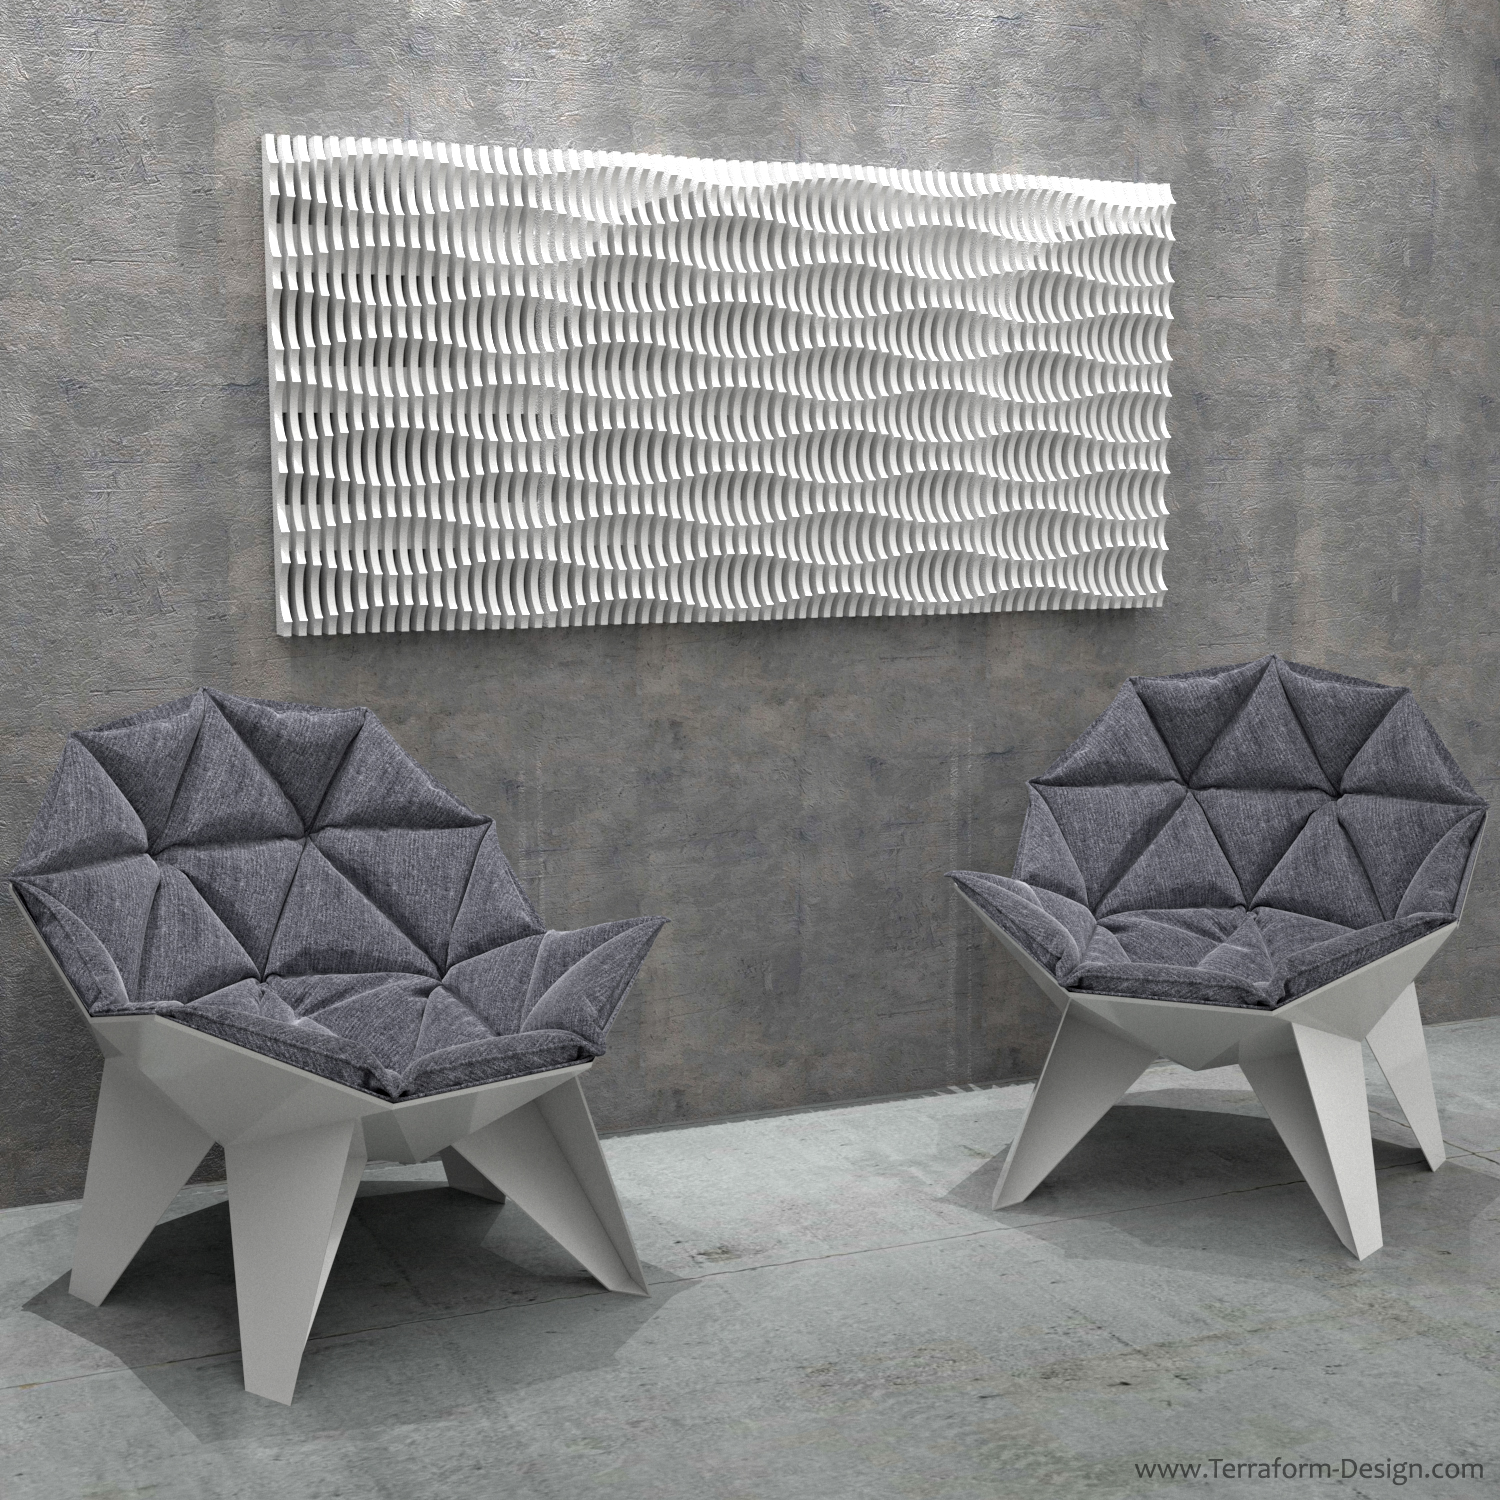 acoustic I_C_2W parametric cnc router postmodern sectioned organic geometric plywood wall fixture accent accessory wall decoration panel terraform design.jpg